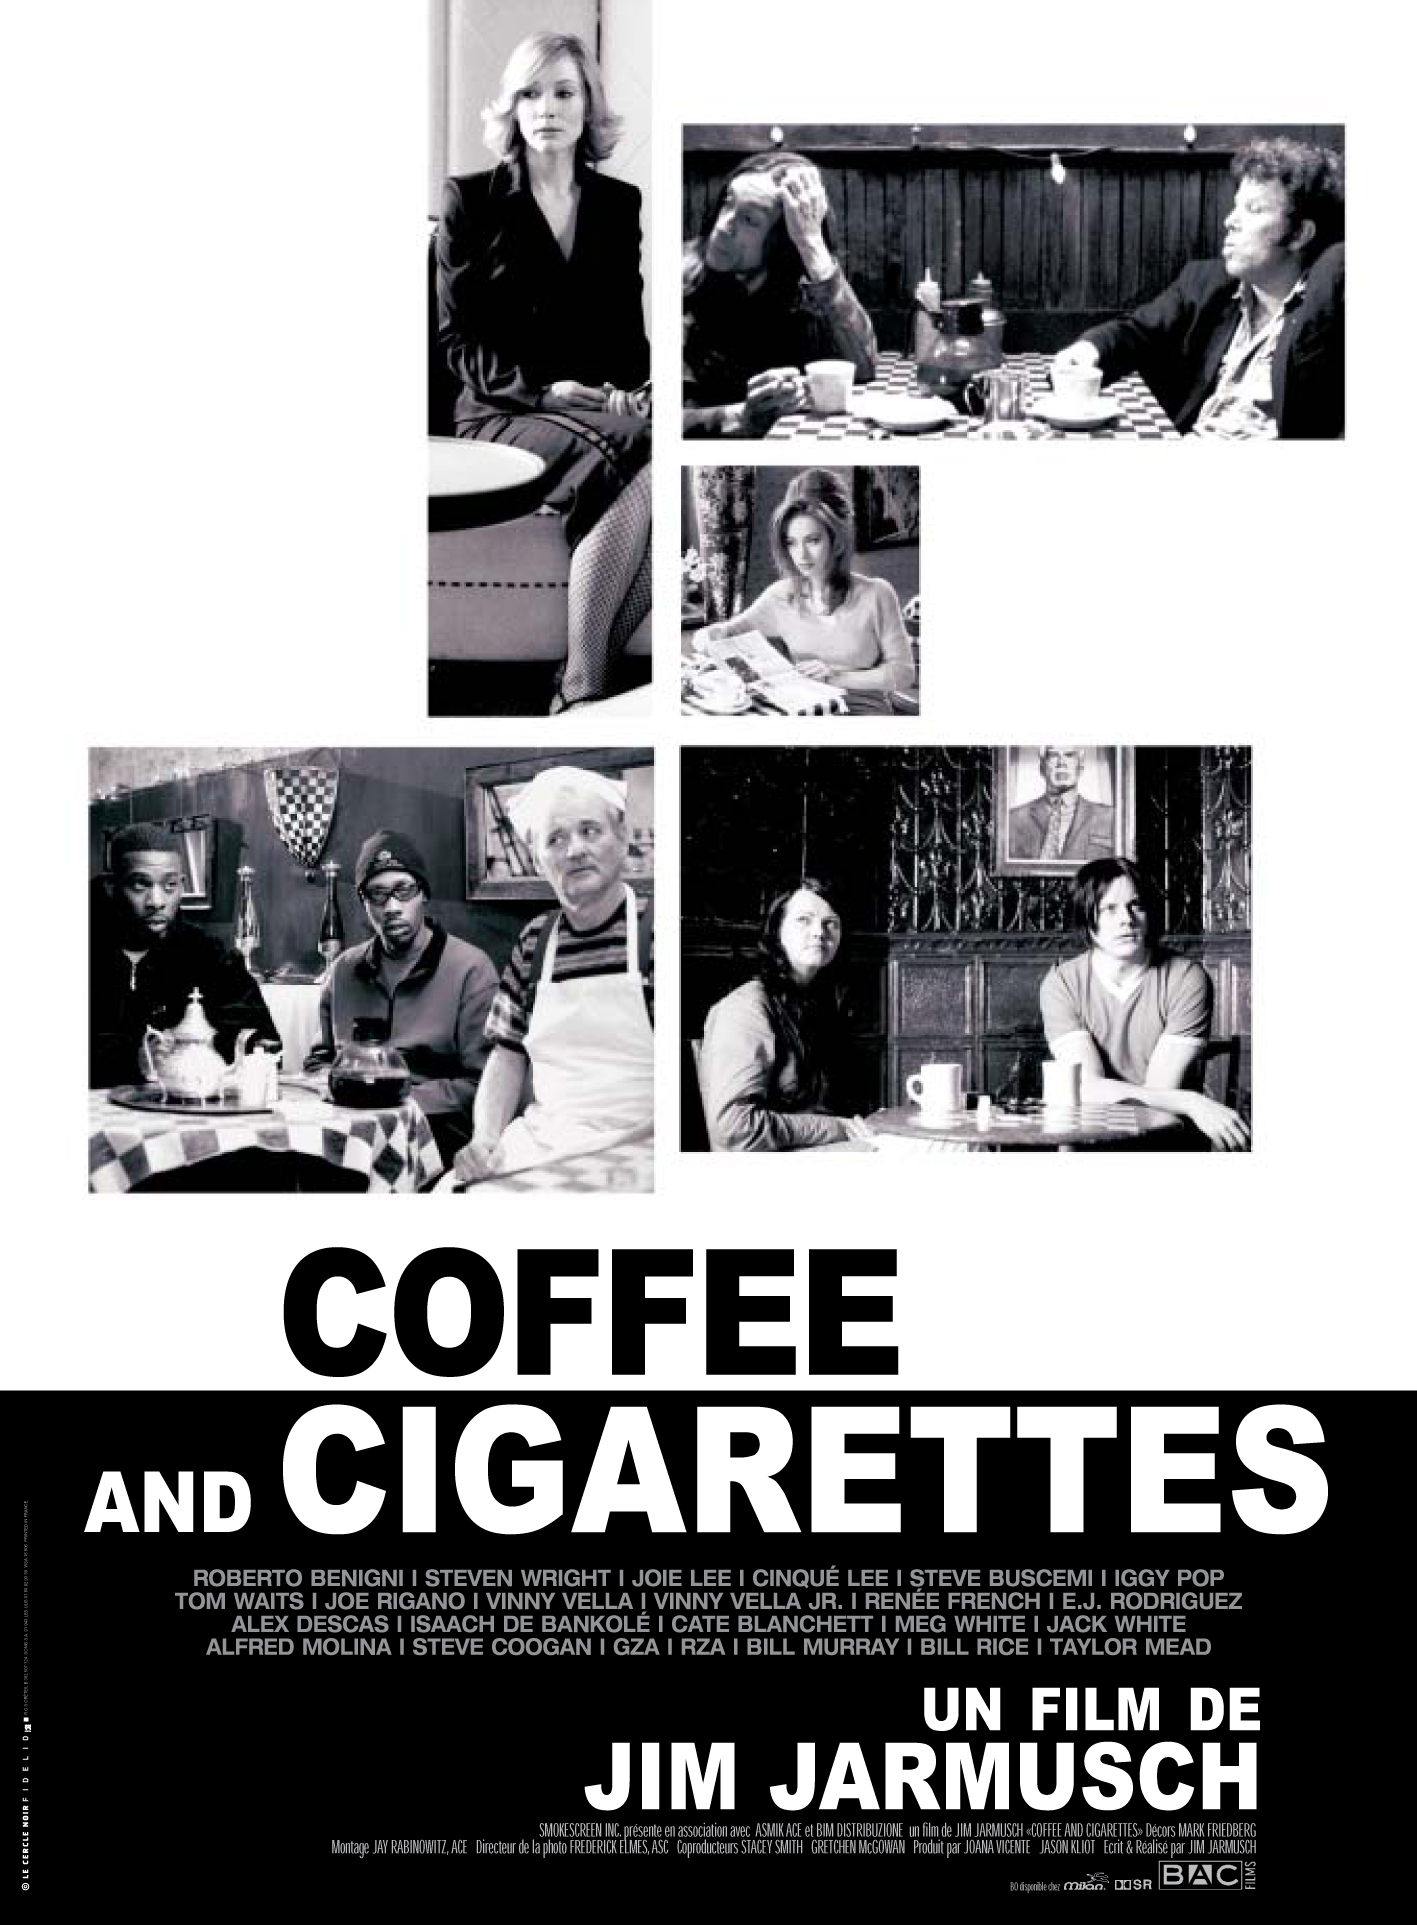 https://i0.wp.com/movieposters.2038.net/p/Coffee-And-Cigarettes.jpg